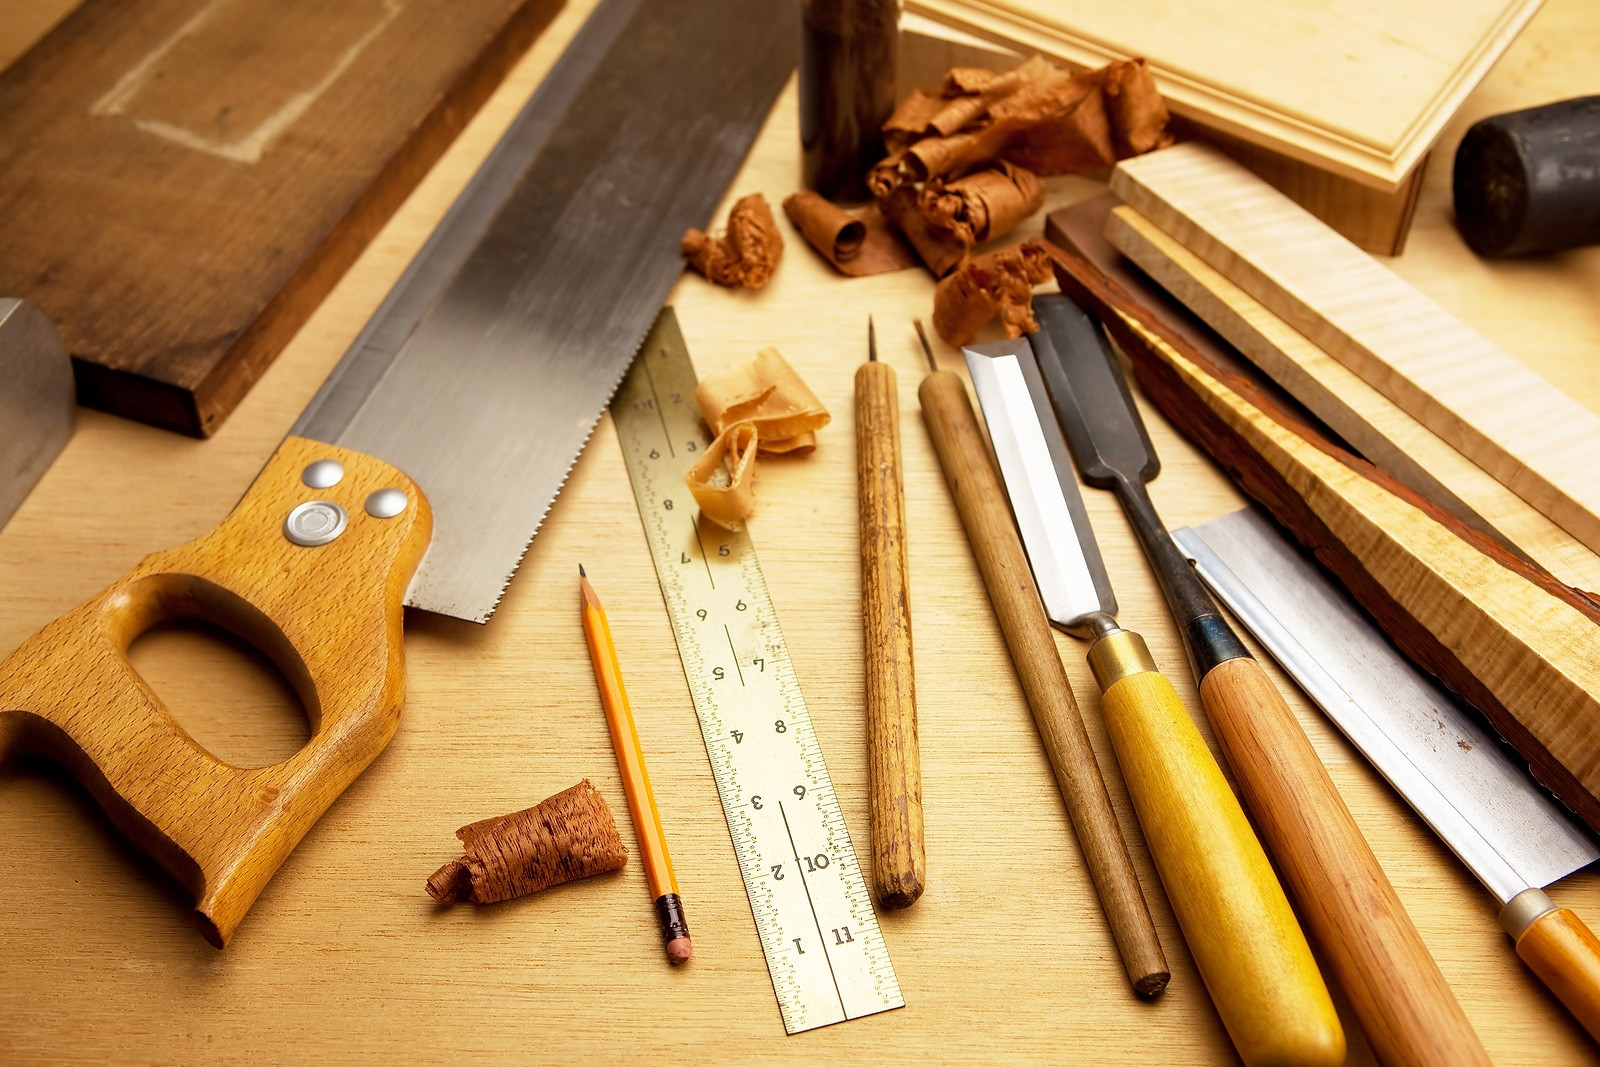 Woodwork DIY Network  Woodworking for Beginners [31 Easy DIY Projects in 2018]